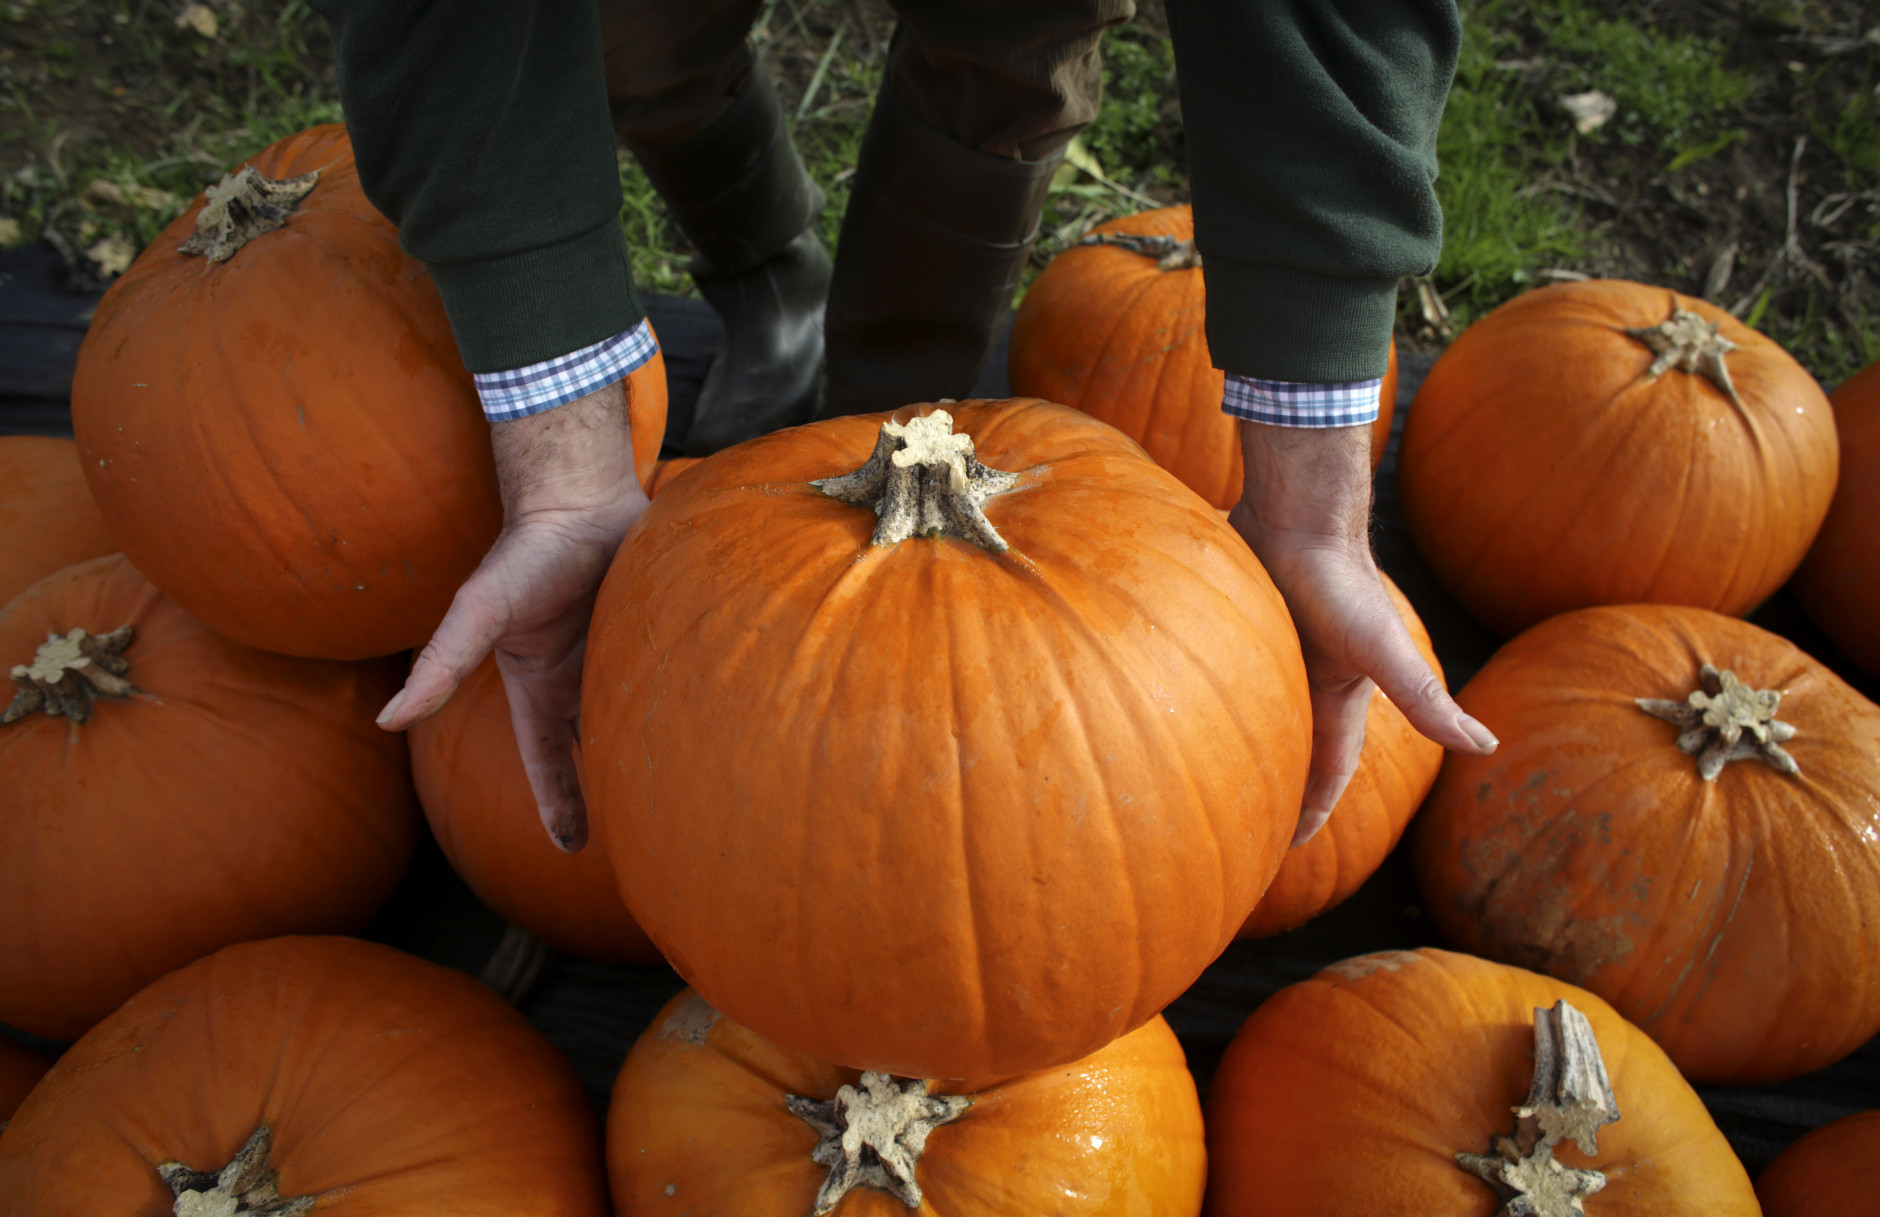 LANDFORD, UNITED KINGDOM - OCTOBER 22:  Farmer Mick Smales inspects a pumpkin that has grown on his farm and is waiting to be picked and dispatched in a field at Lyburn Farm in Landford on October 22, 2014 in Wiltshire, England. Although some farmers have been warning of a pumpkin shortage due to the recent wet weather, the main supermarkets are confident of meeting demand which has increased as the popularity of Halloween grows in the UK. Out of the 10 million pumpkins it is estimated that will be grown this year, the majority will be made into Halloween lanterns.  (Photo by Matt Cardy/Getty Images)